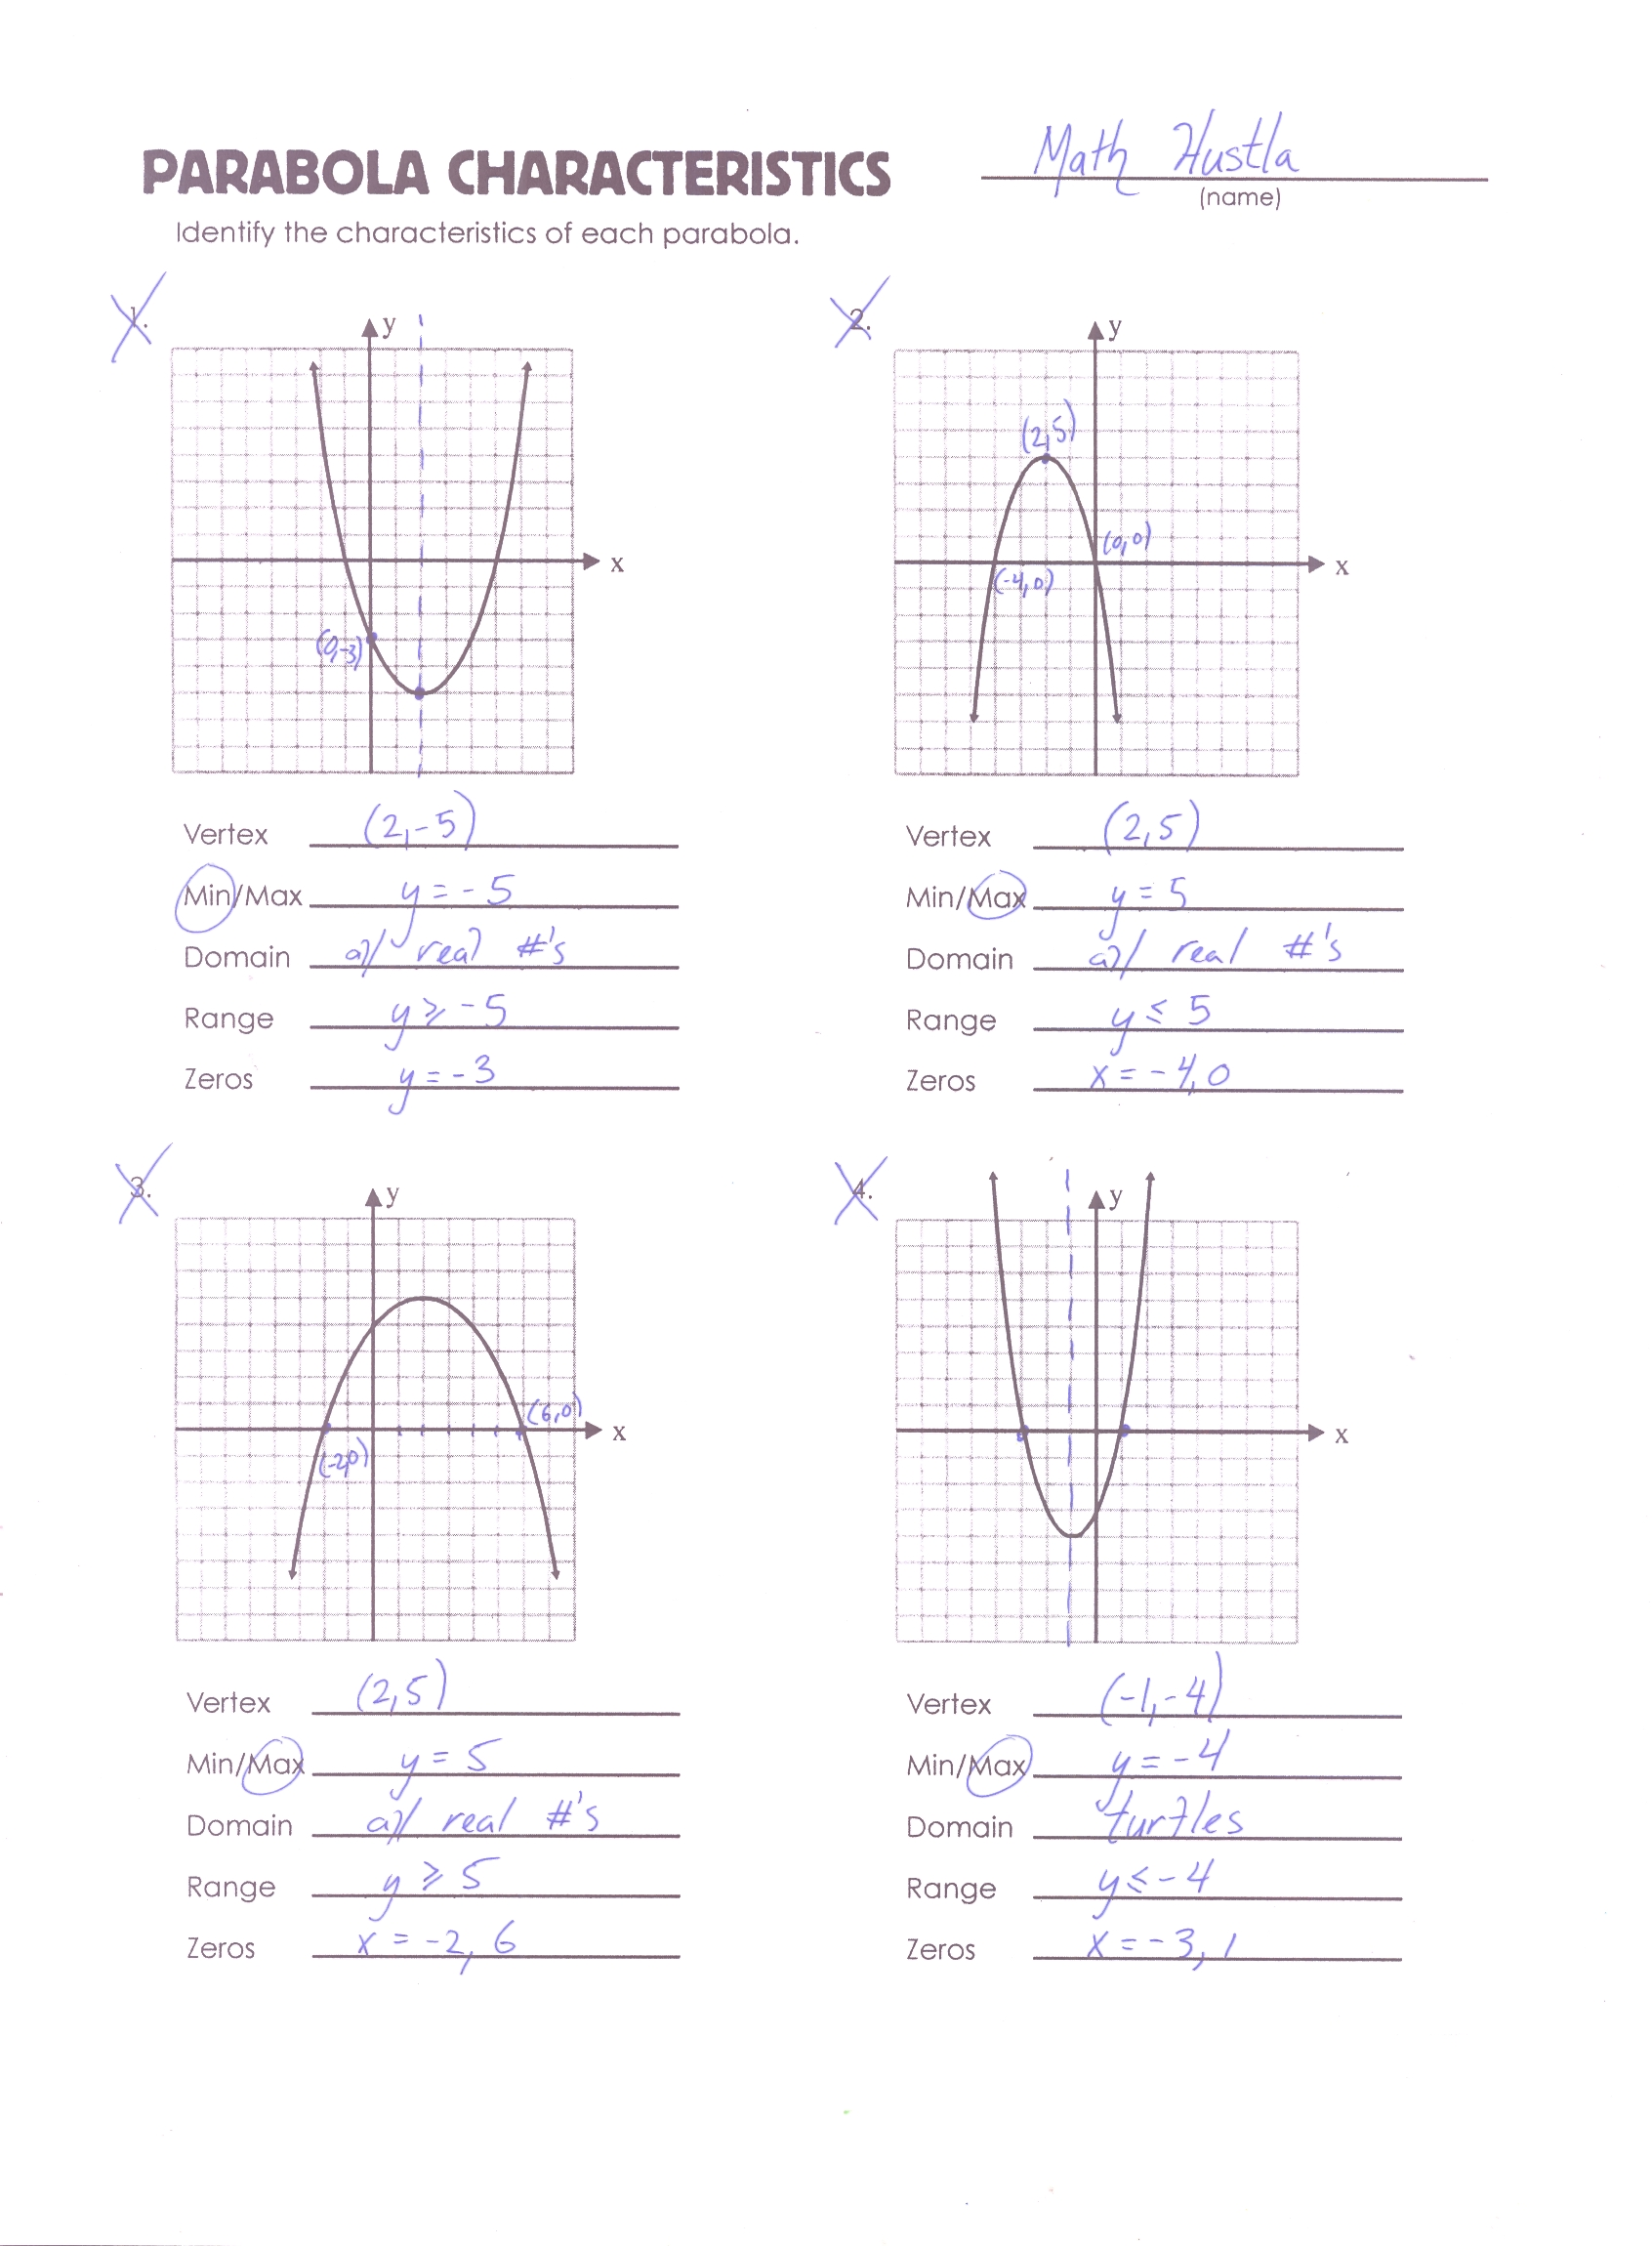 Worksheets mrmillermath mathhustlaerror robcynllc Images